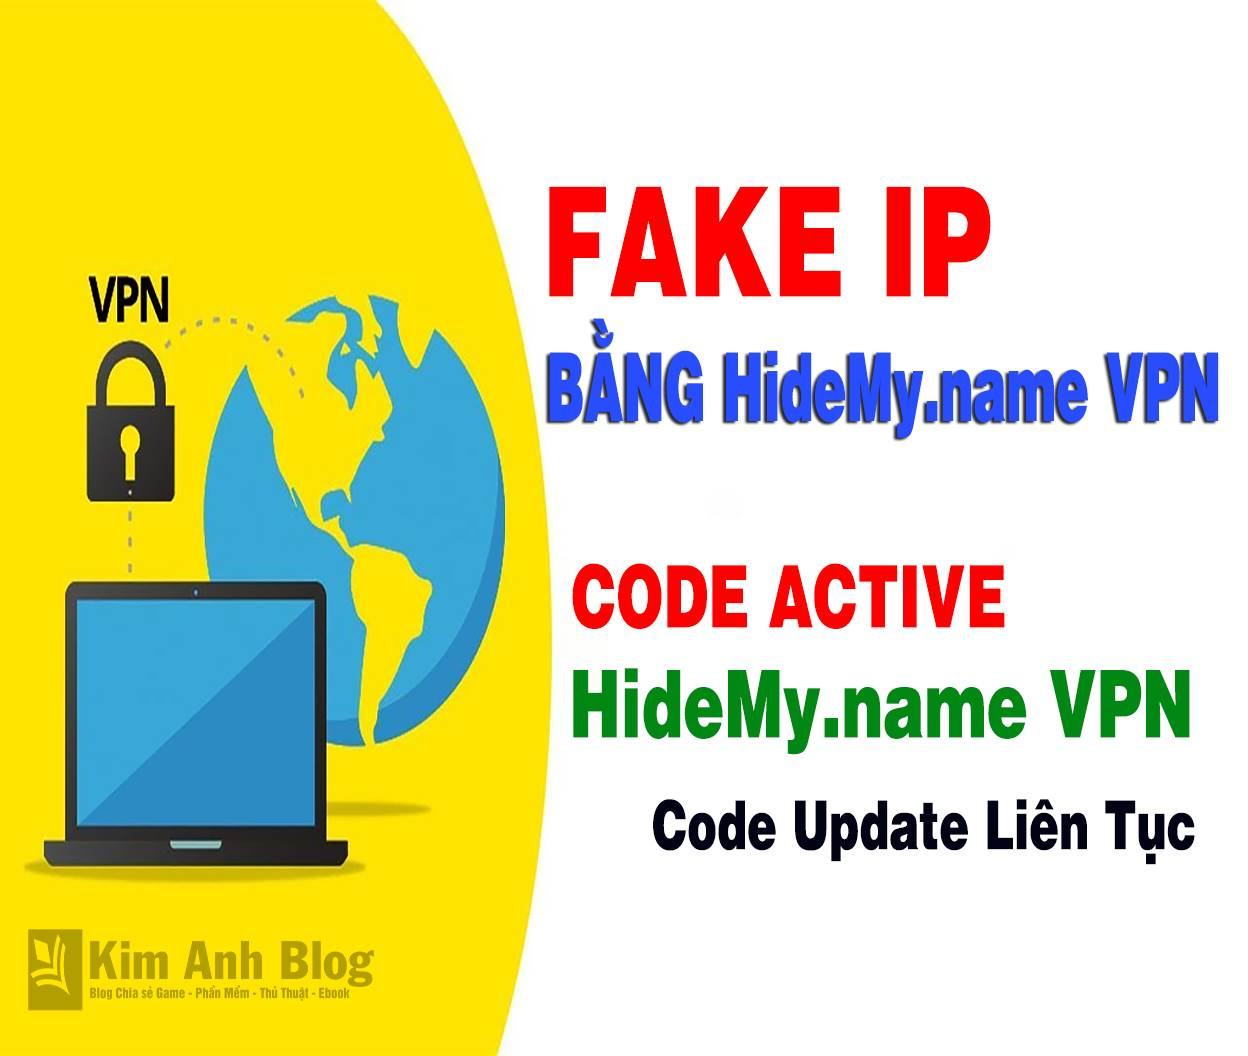 code hidemy name, code hidemy.name vpn, hide my name proxy, hidemy.name vpn 1.43, hidemy.name vpn code, hidemy.name vpn crack, hidemy.name vpn download, hidemy.name vpn full, hidemy.name vpn key, luot web an danh, phan mem fake ip, vpn connection windows 10, vpn connection, phần mềm fake ip tốt nhất, fake ip cho pc